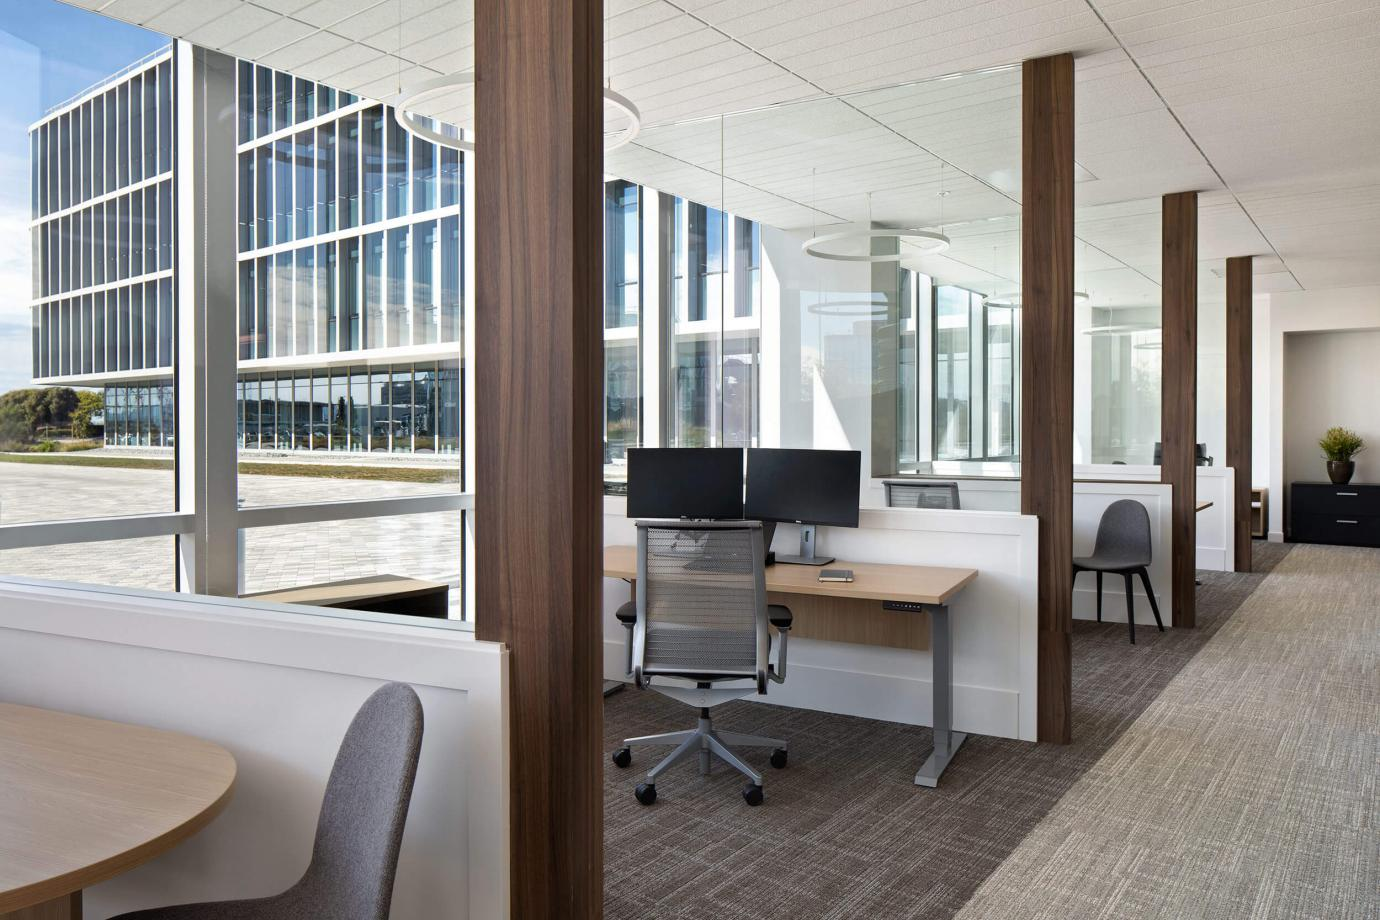 Offices with views to outdoors and natural light